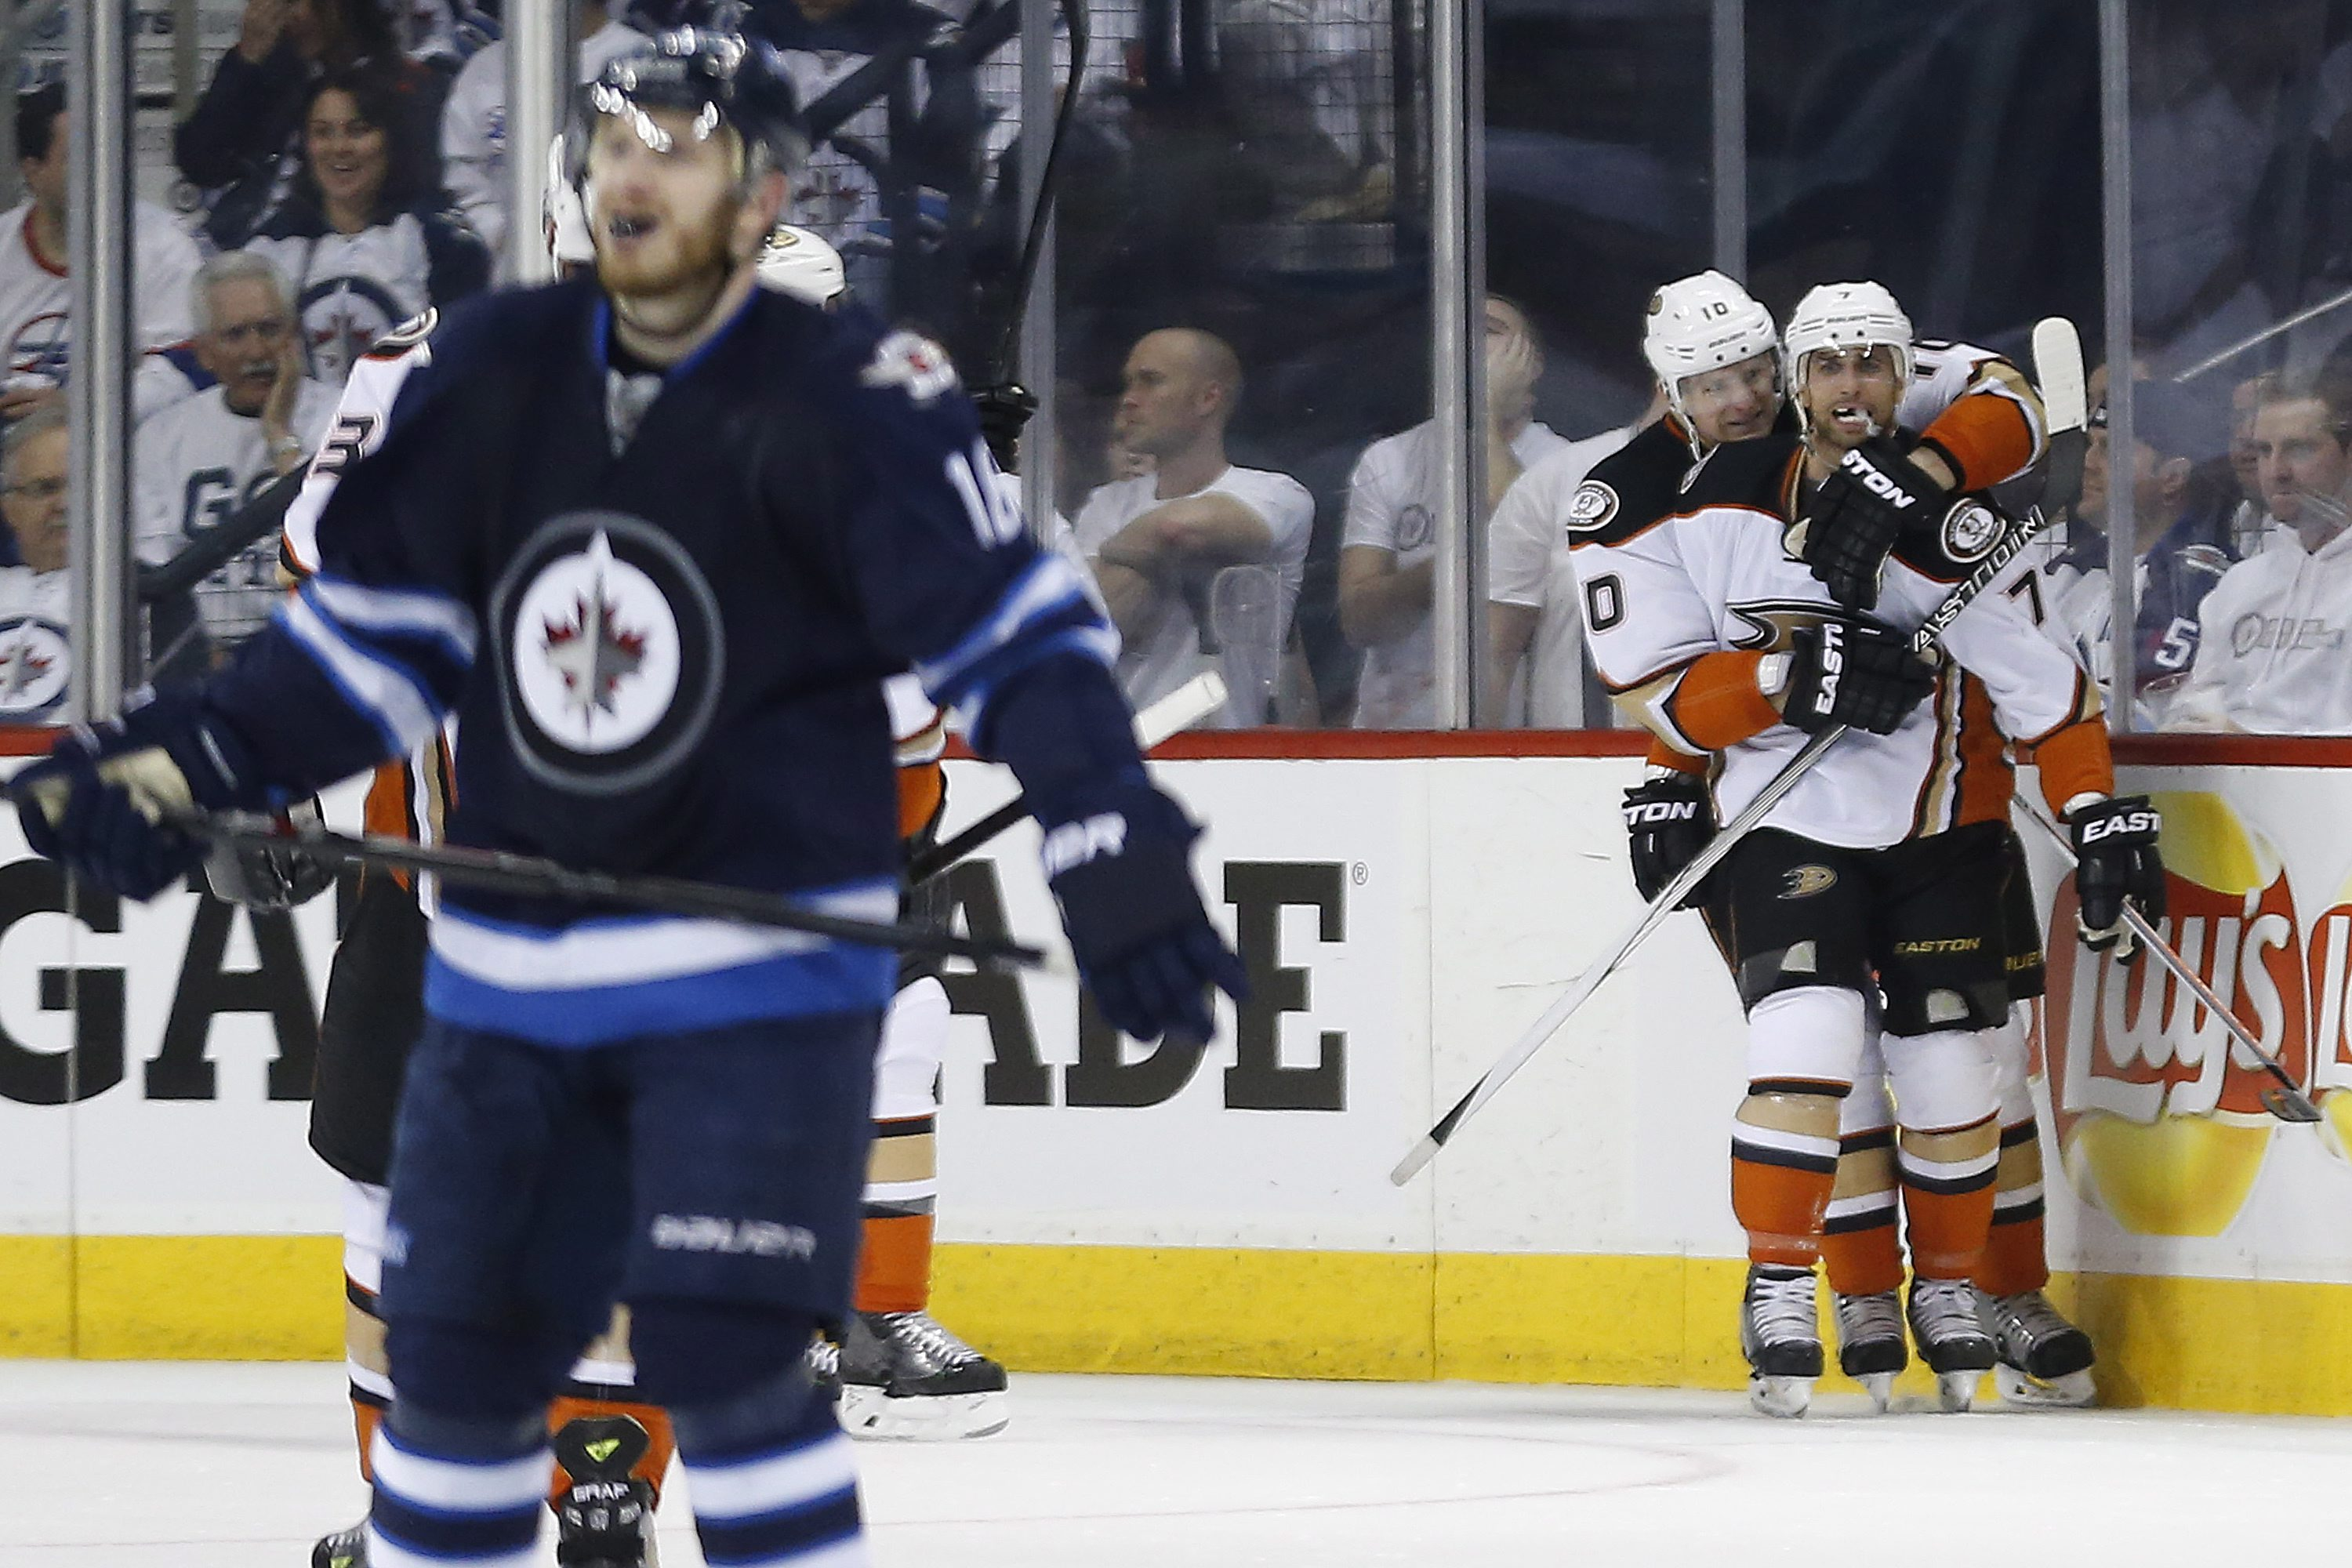 Anaheim Ducks' Andrew Cogliano (7) and Corey Perry (10) celebrate Cogliano's goal against the Winnipeg Jets during the second period of Game 4 of a first-round NHL hockey playoff series, Wednesday, April 22, 2015, in Winnipeg, Manitoba. (John Woods/The Ca